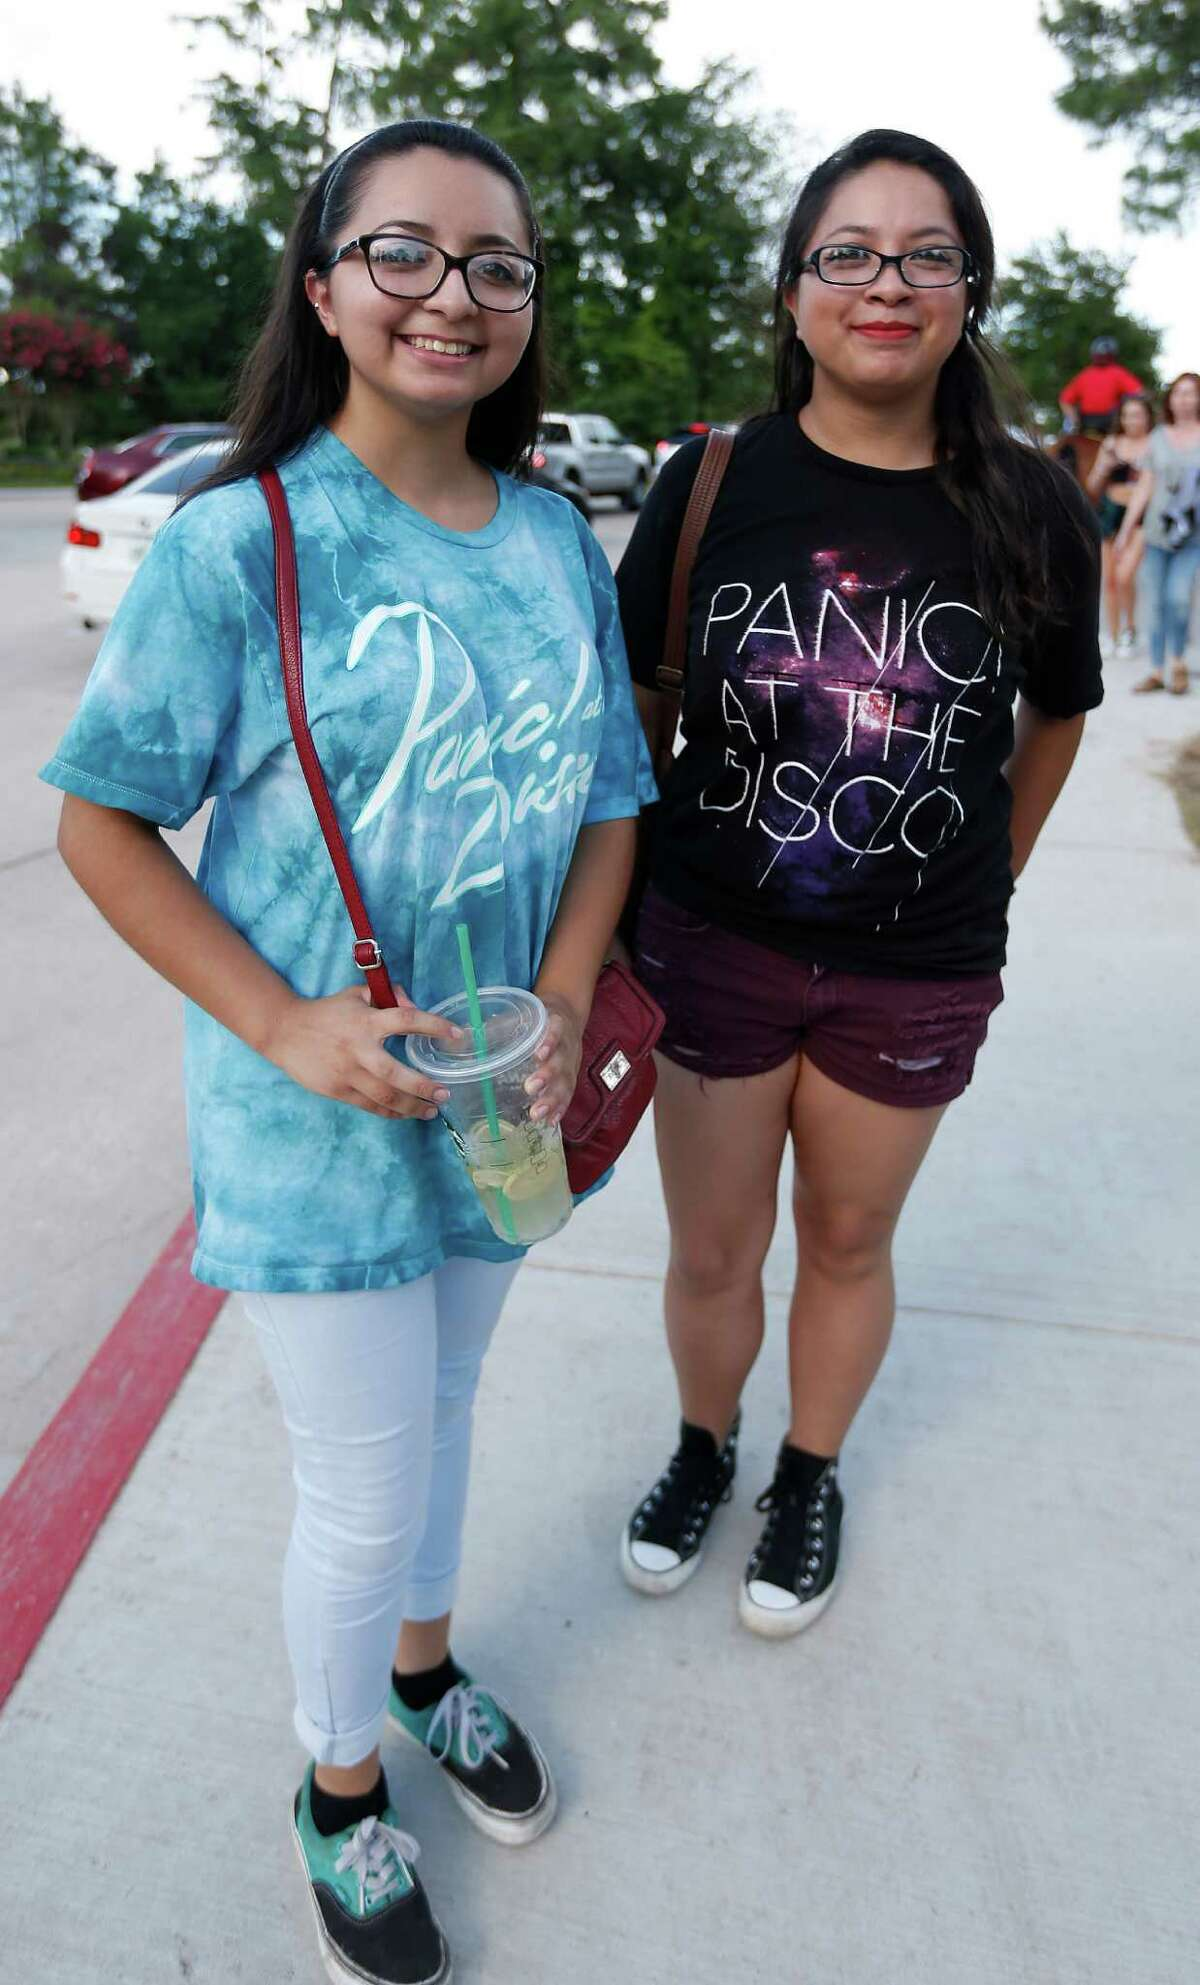 Fans at the Weezer-Panic! at the Disco concert at the Cynthia Woods Mitchell Pavilion in The Woodlands on June 10.